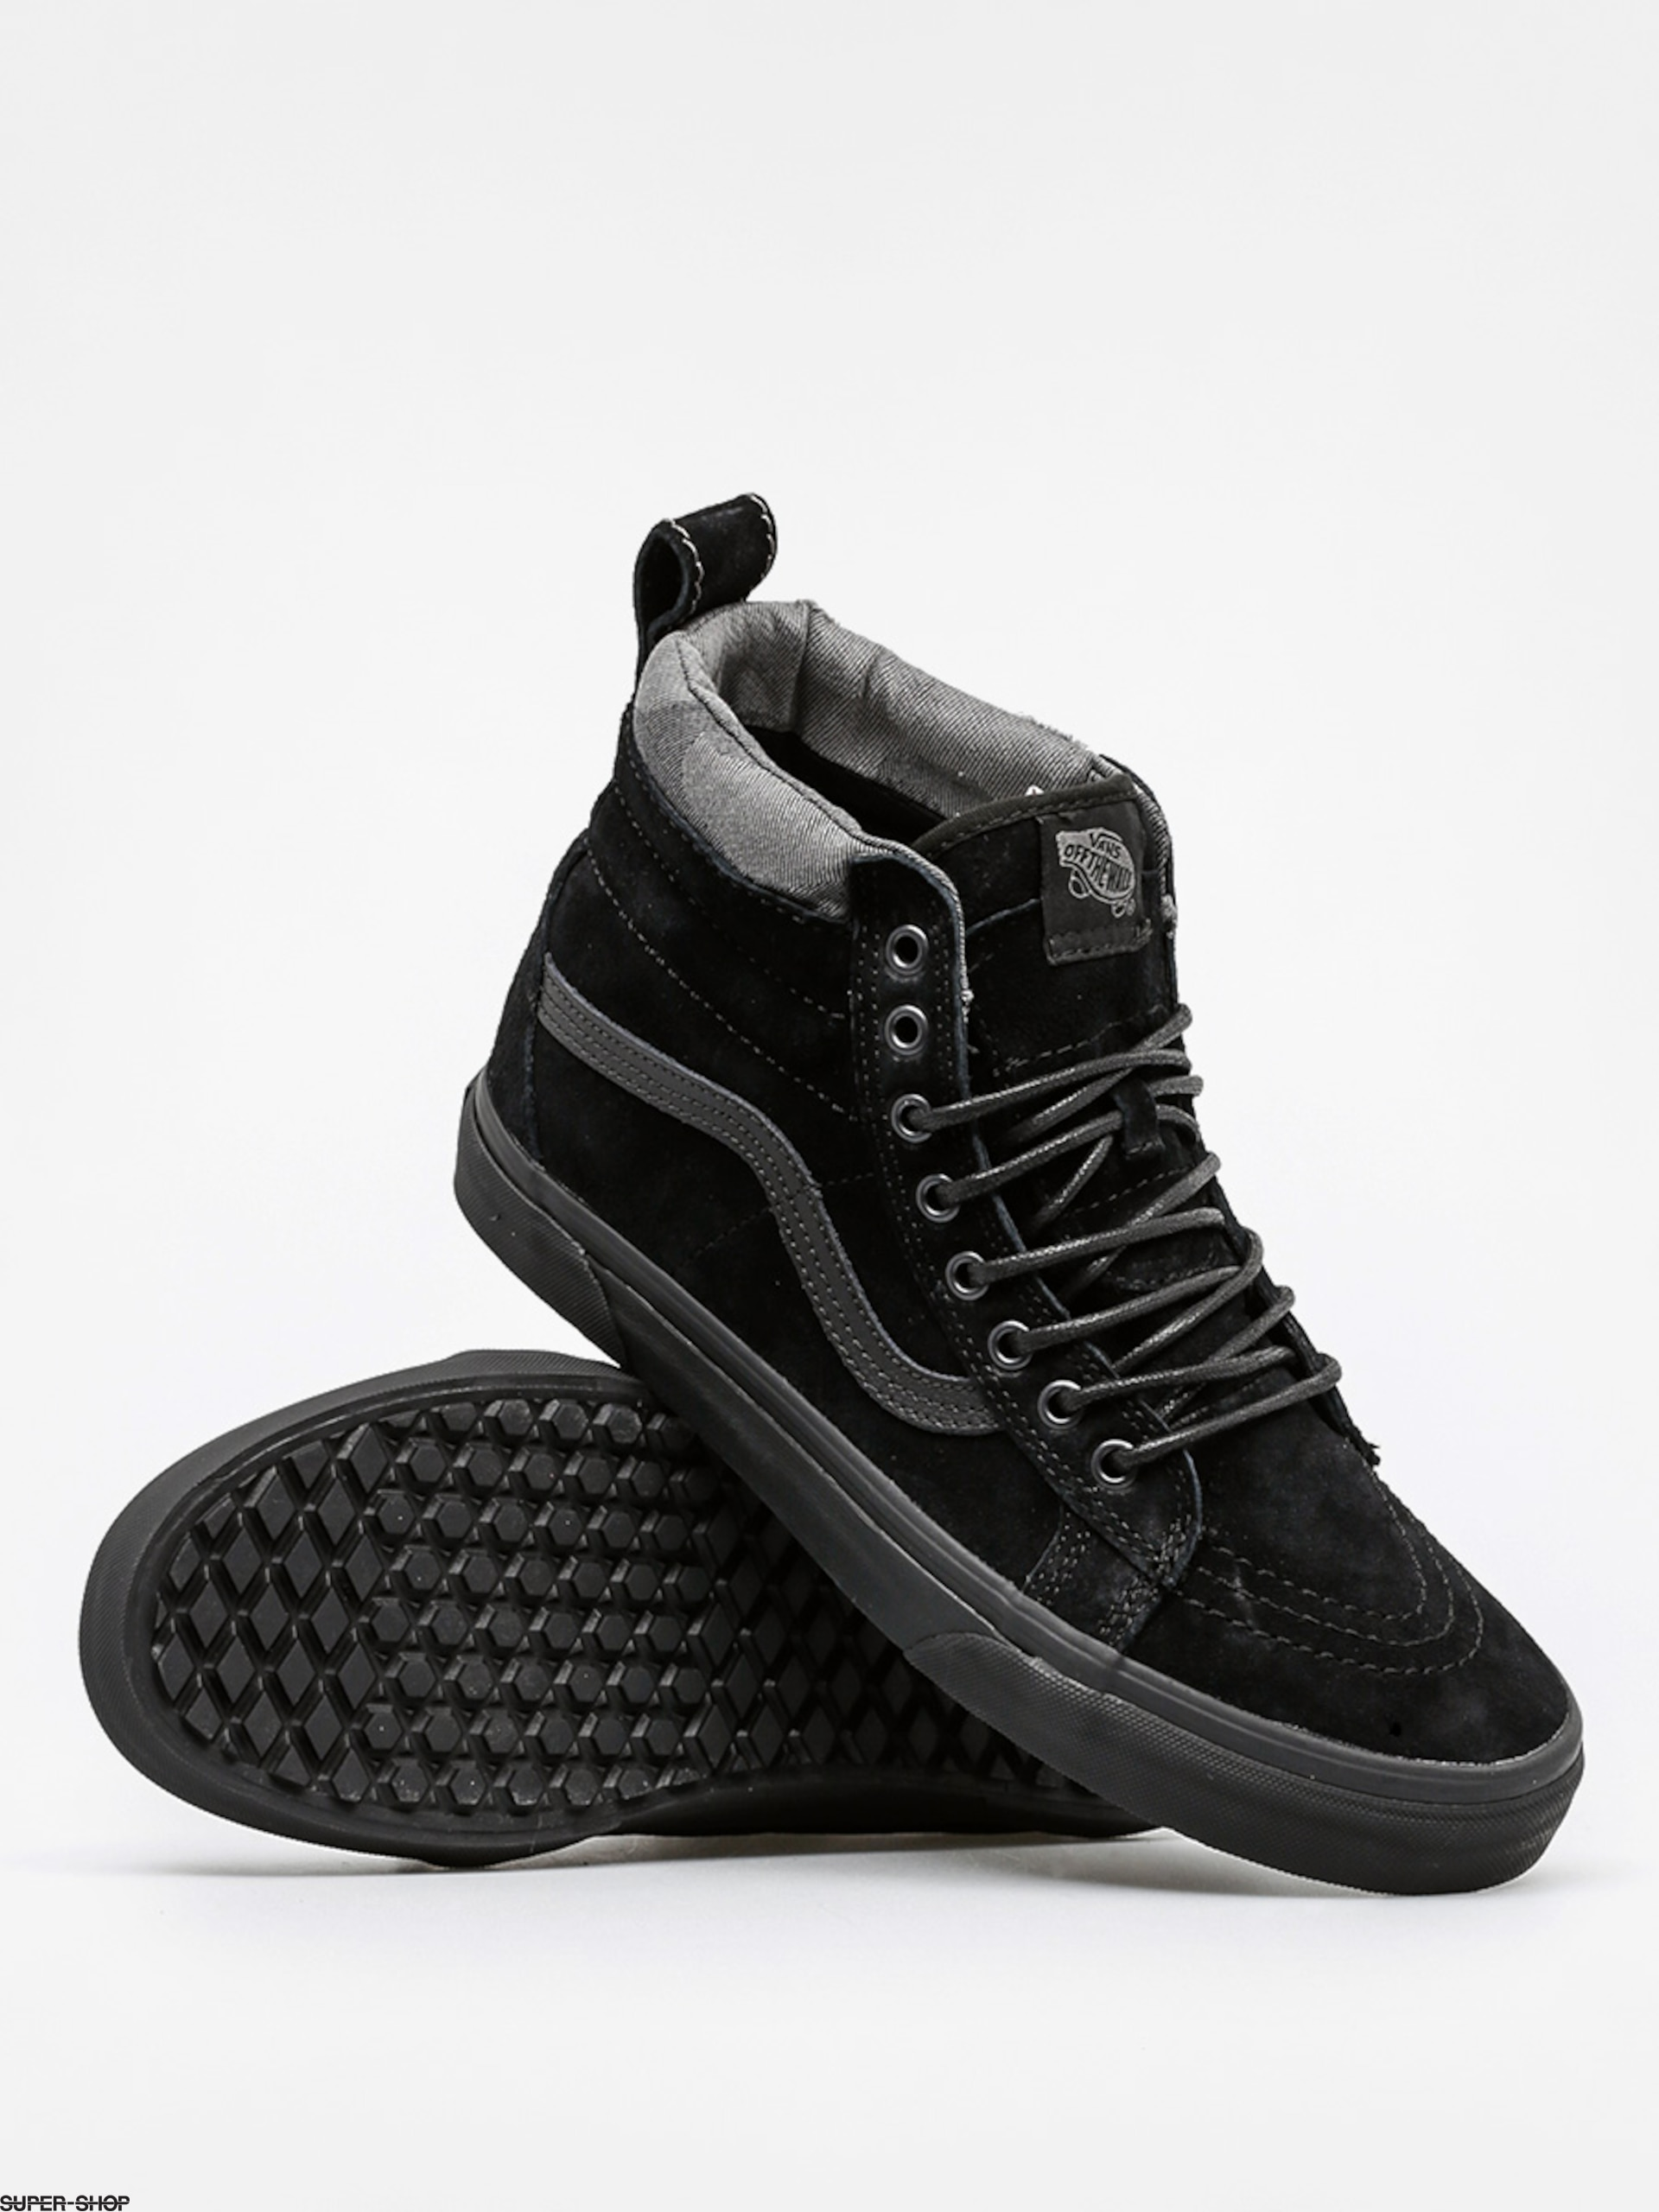 vans shoes sk8 hi mte mte black black camo vans shoes sk8 hi mte mte black black camo